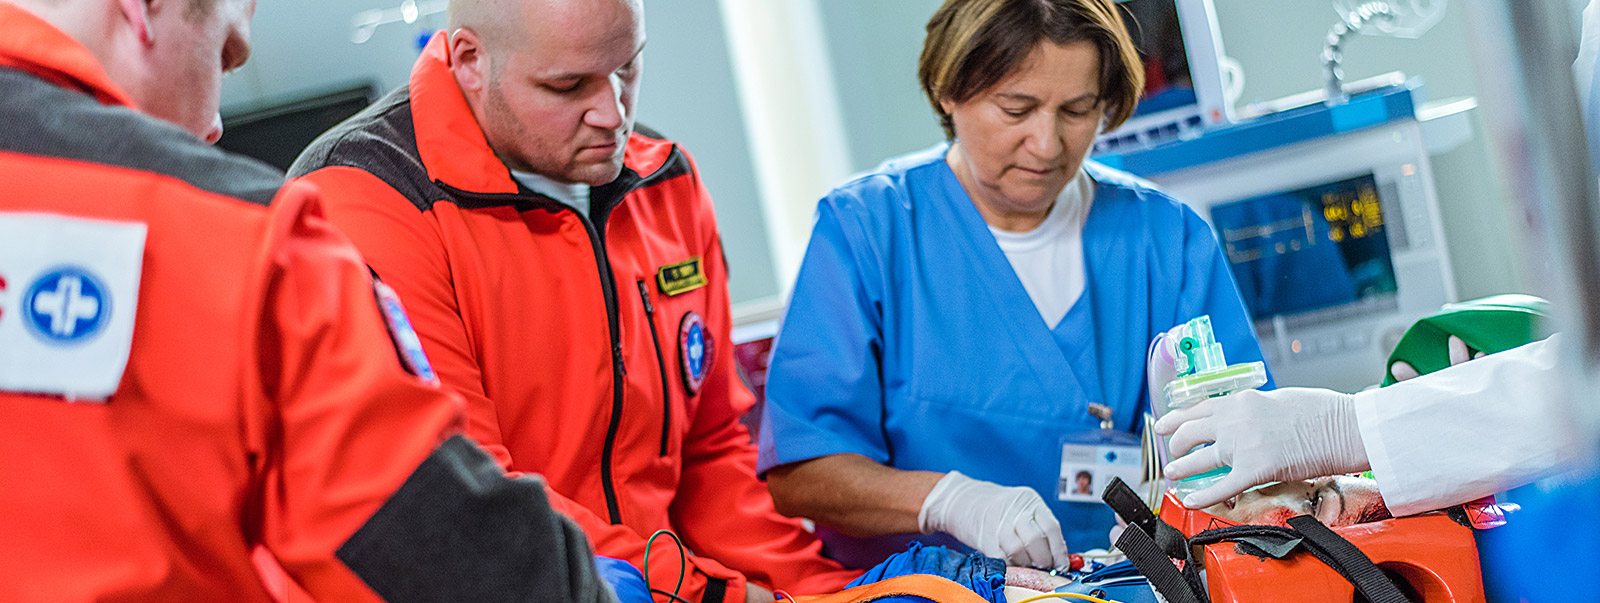 paramedic working with nurse in emergency room